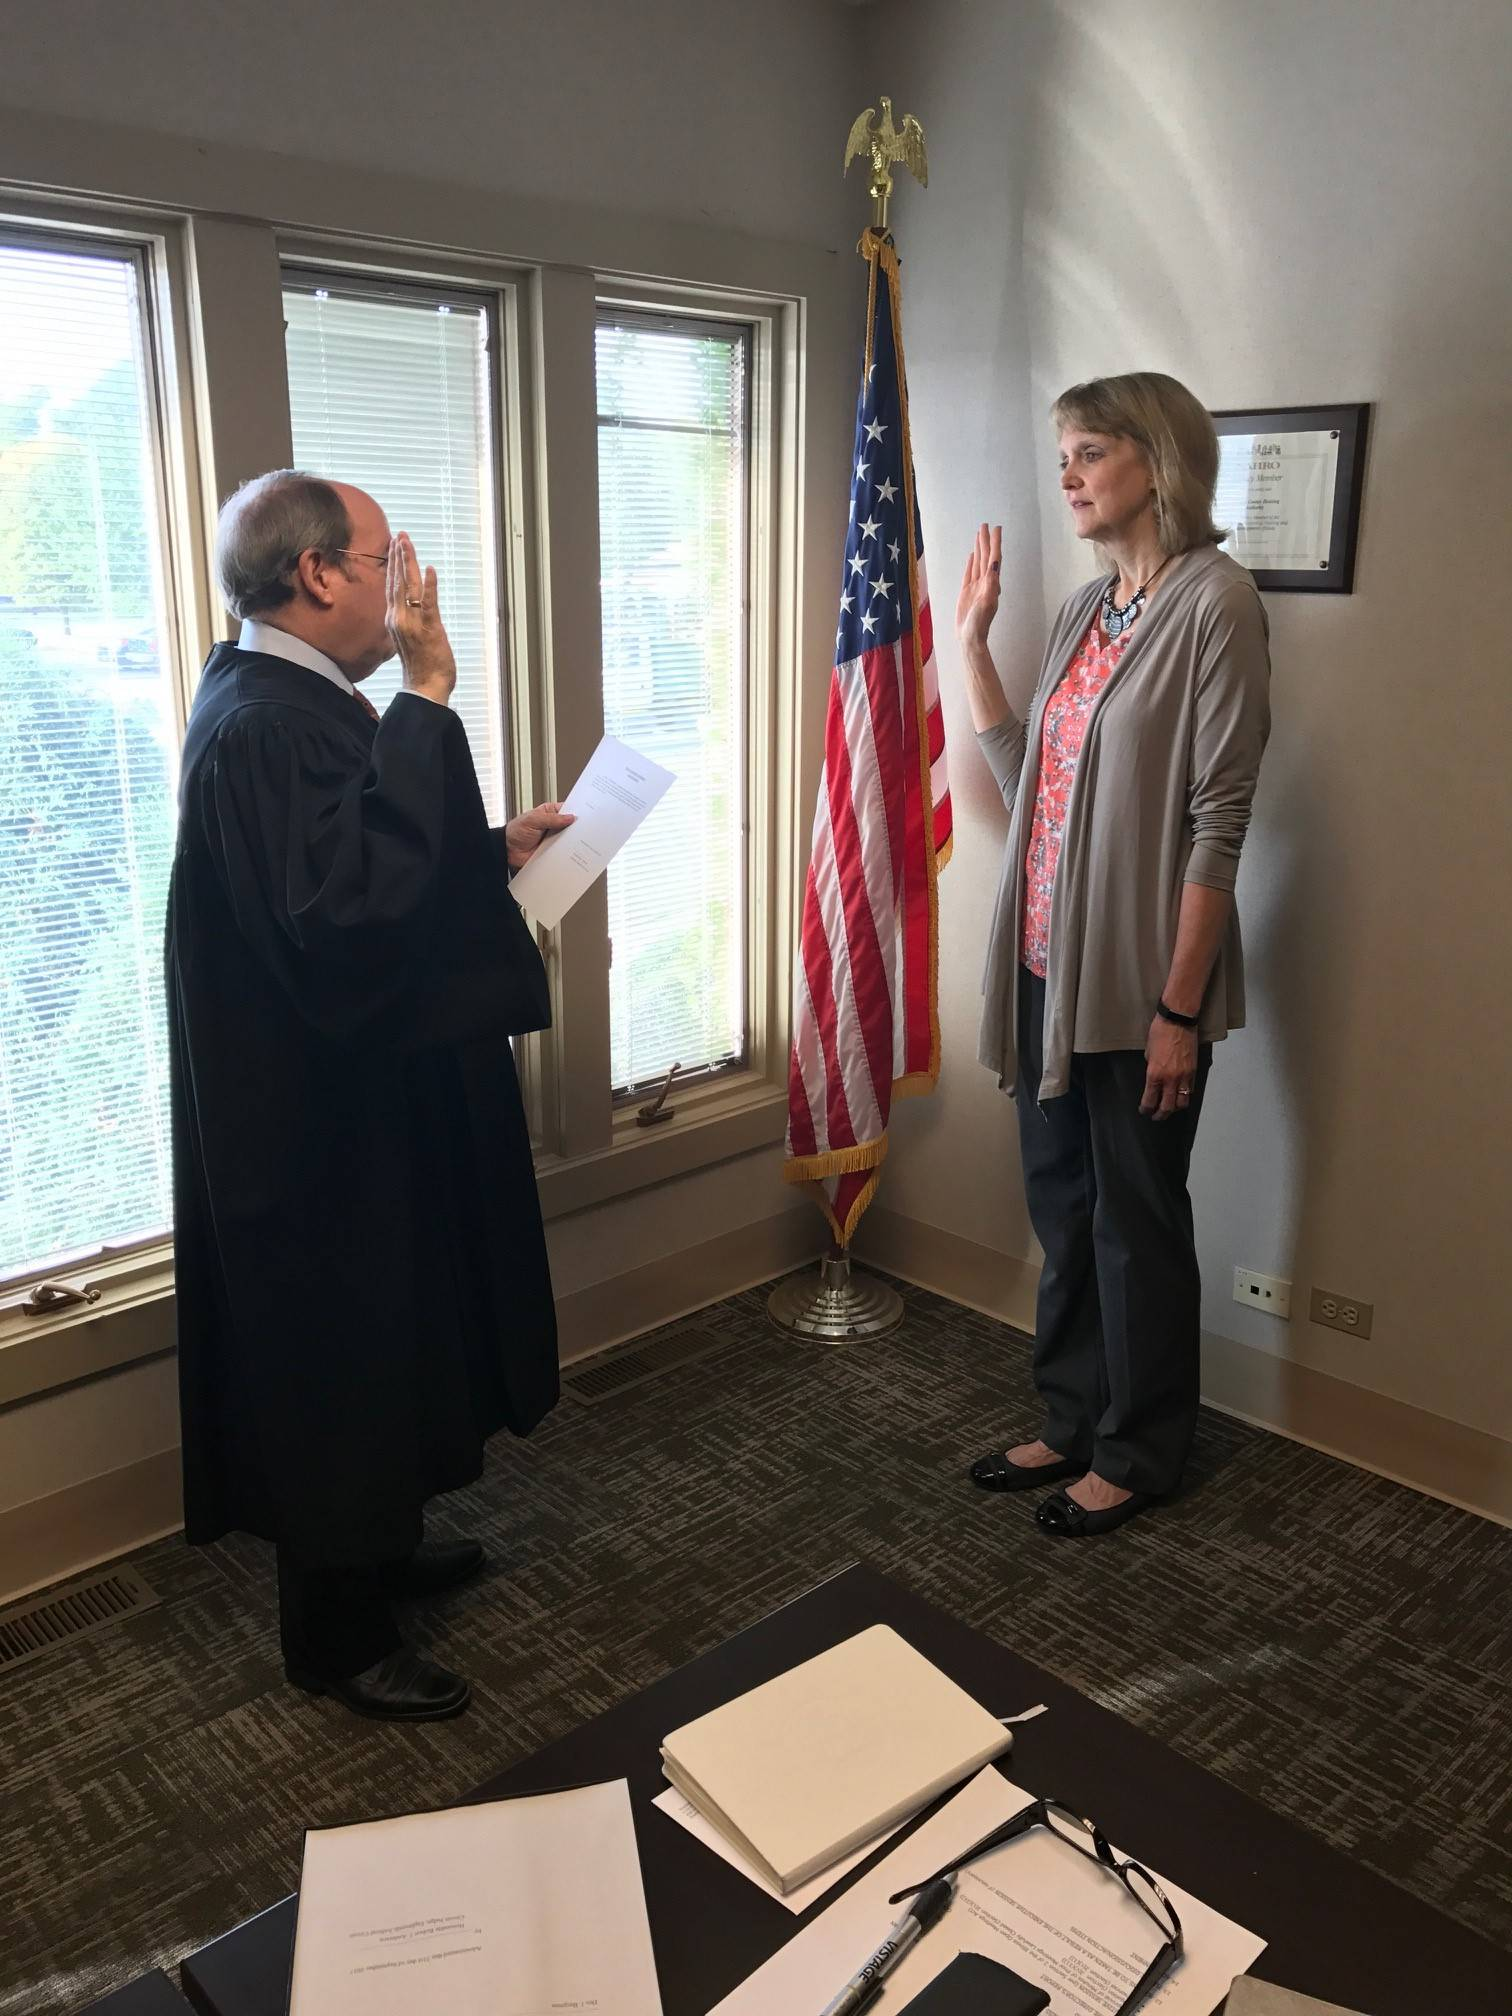 Dru J. Bergman Oath of Office as new Commissioner